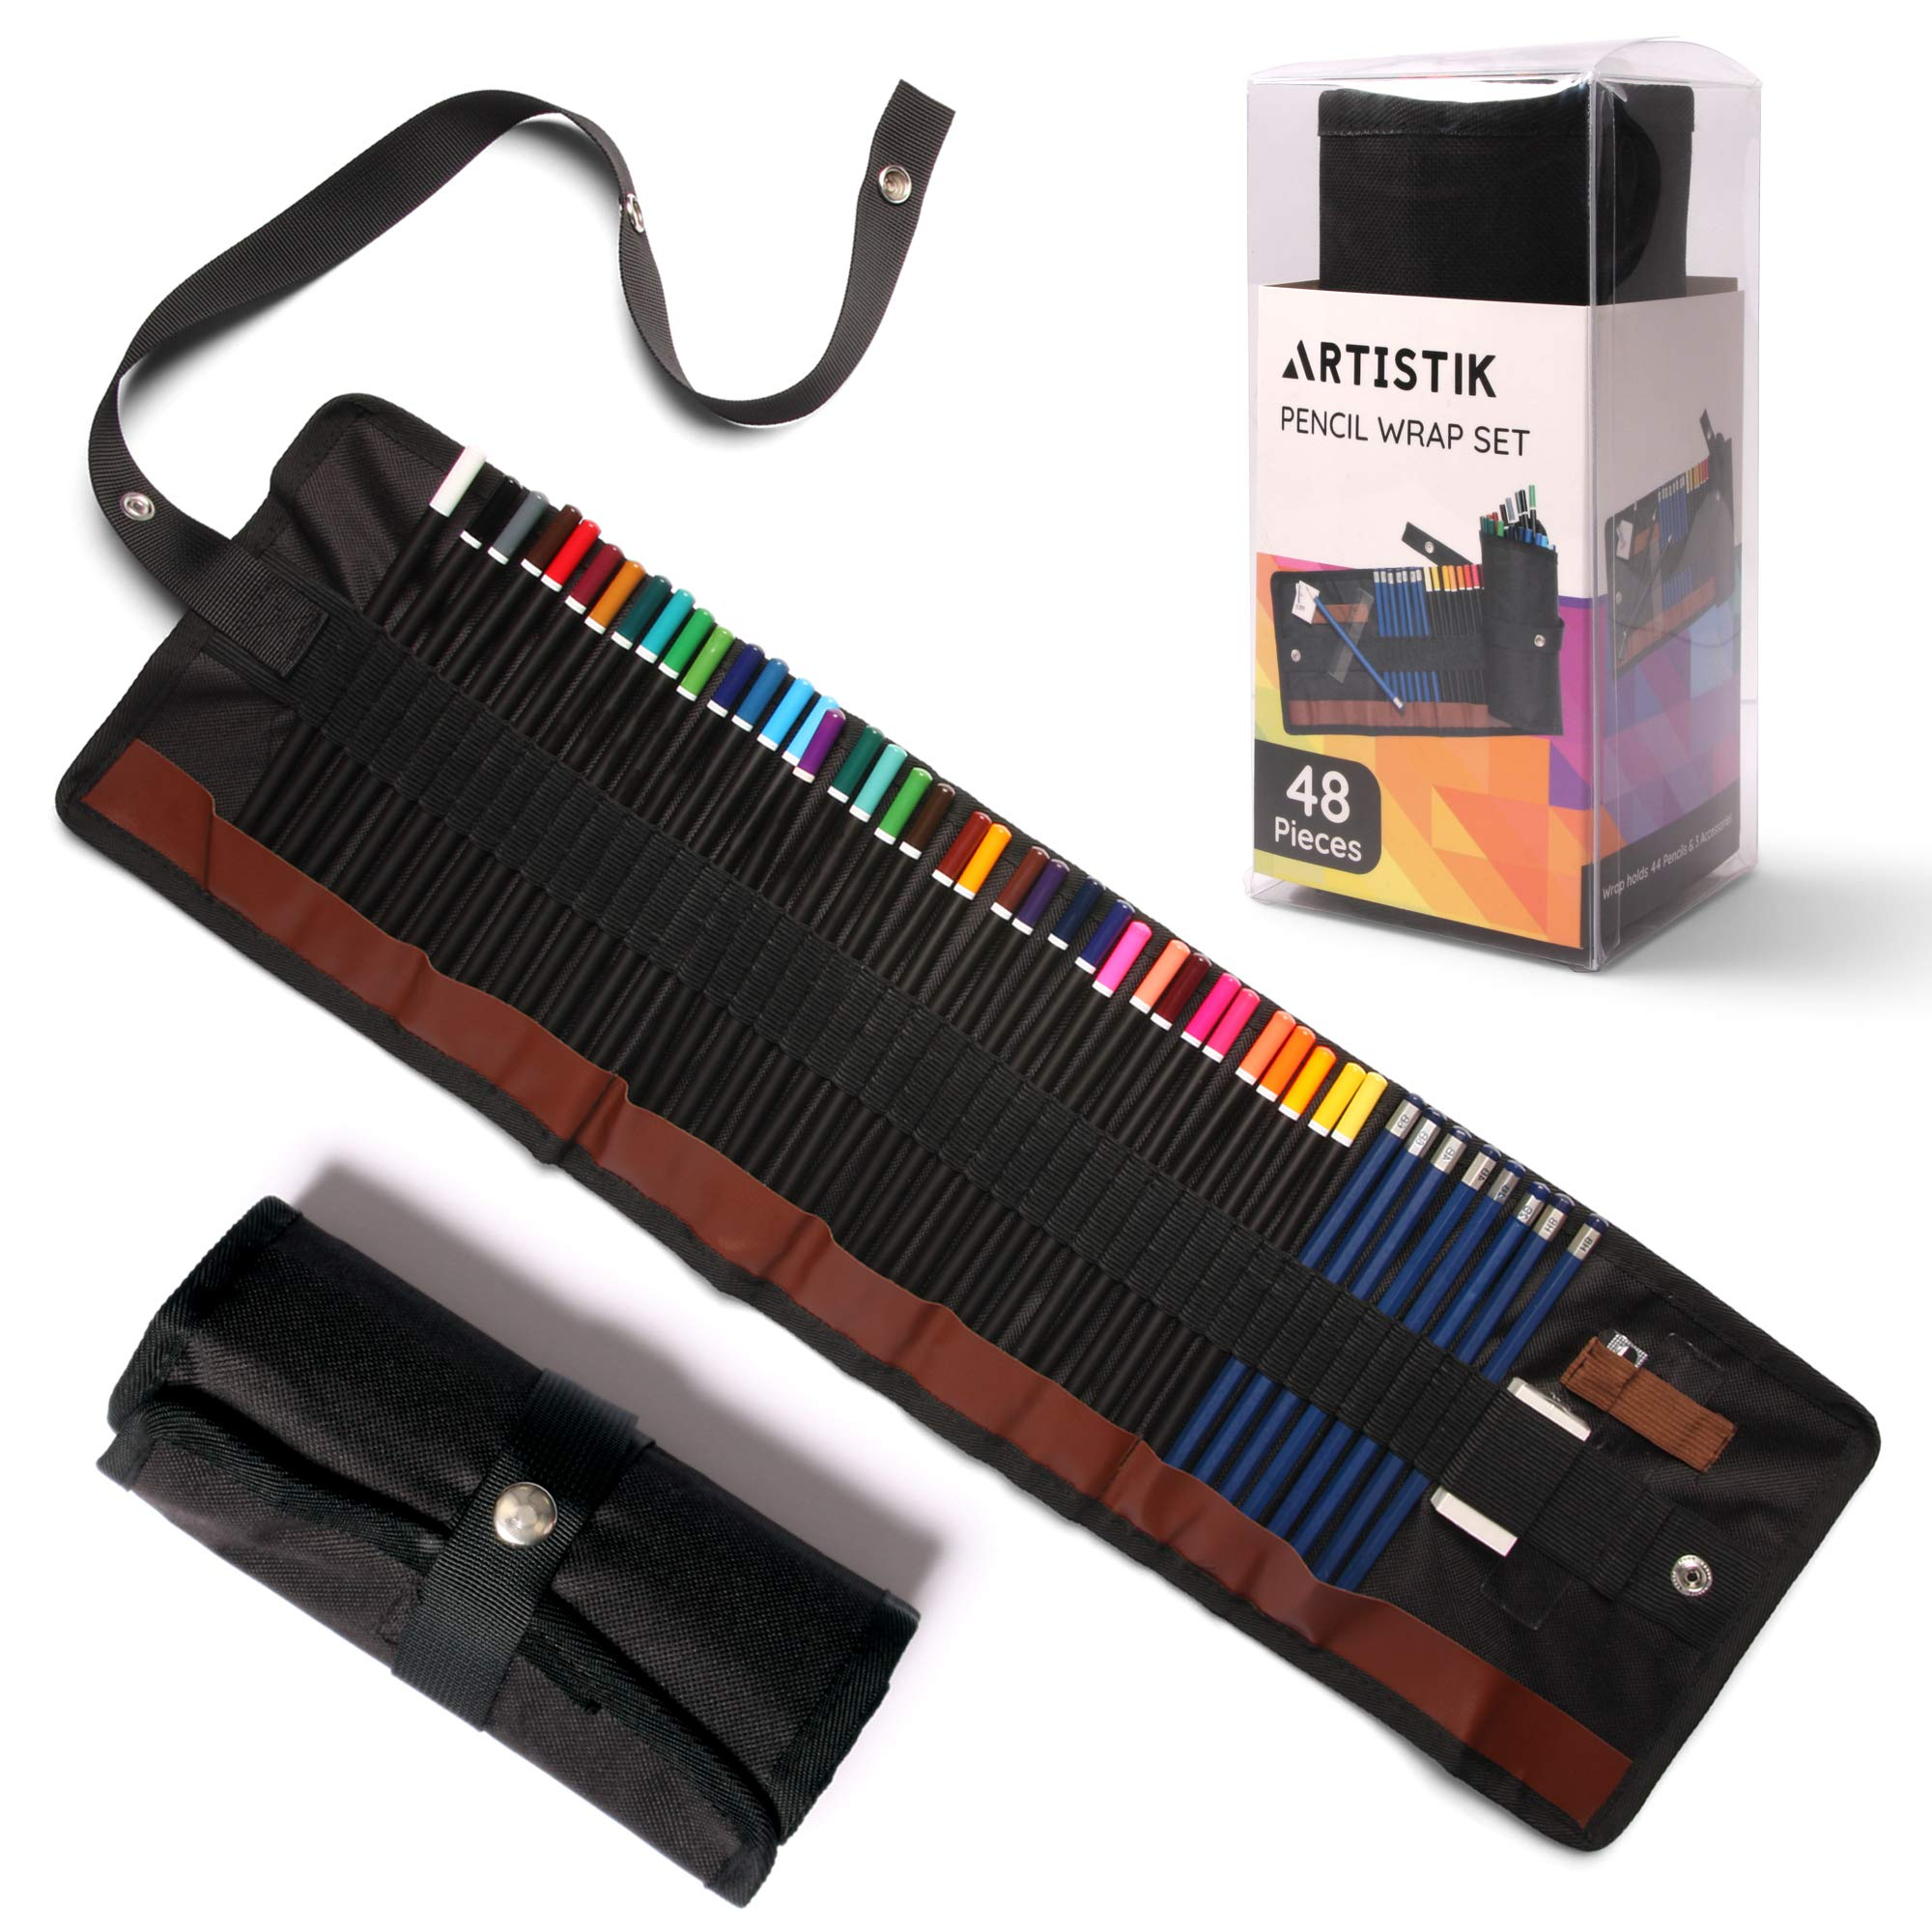 Colored Pencil Set - (47 Pieces) Vivid 3.5 mm Artist Grade Drawing & Sketching Colored Pencils for Adults, Ideal for Coloring Books, Watercolor, Professional Sketching Pencils and Travel Wrap Case by Artistik